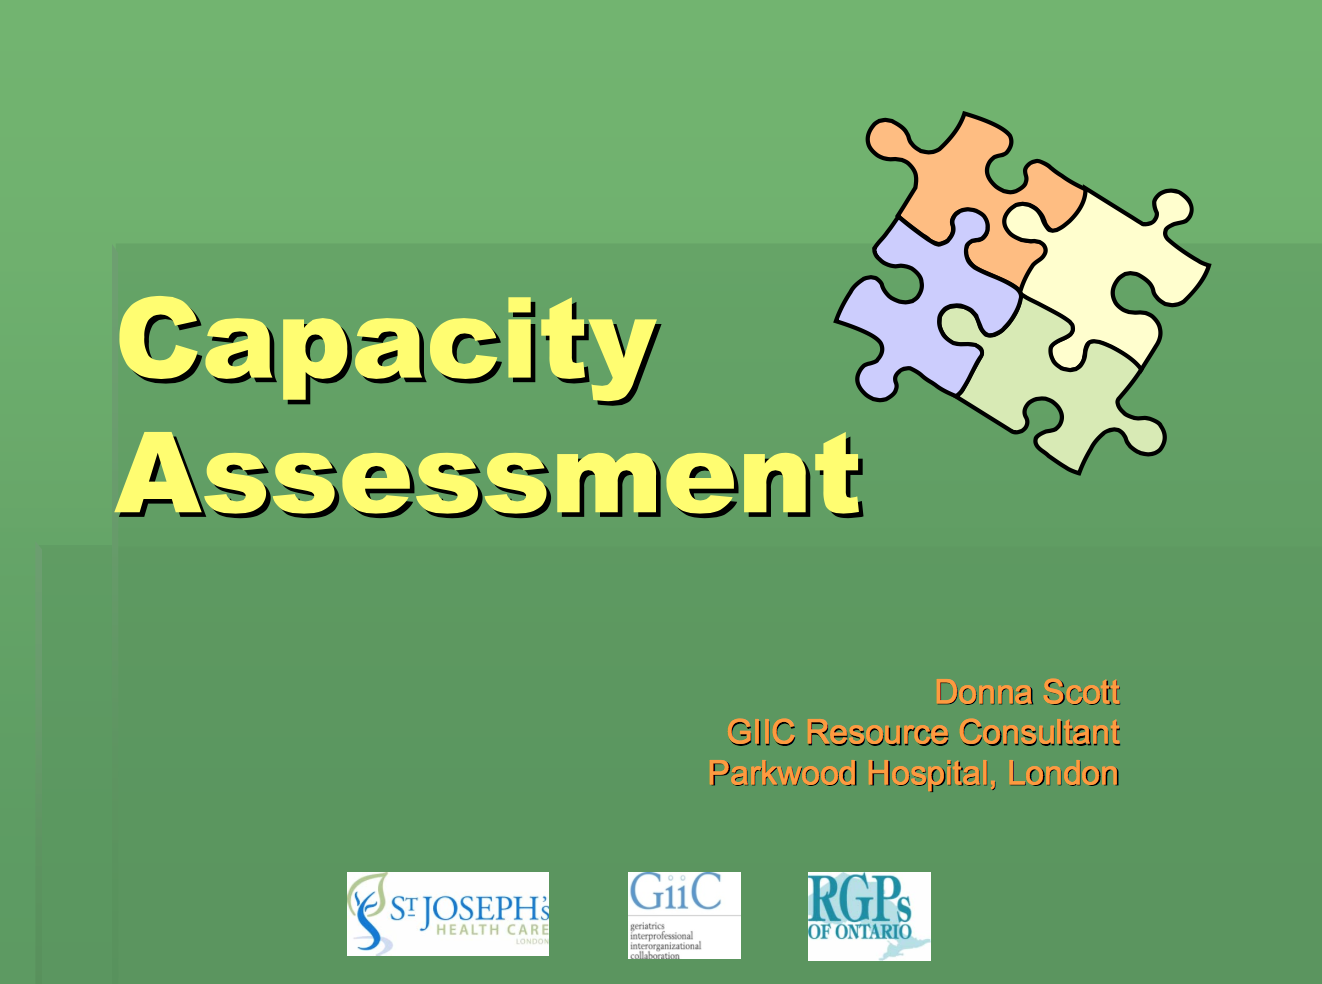 10 Teaching Slides on Capacity Assessment